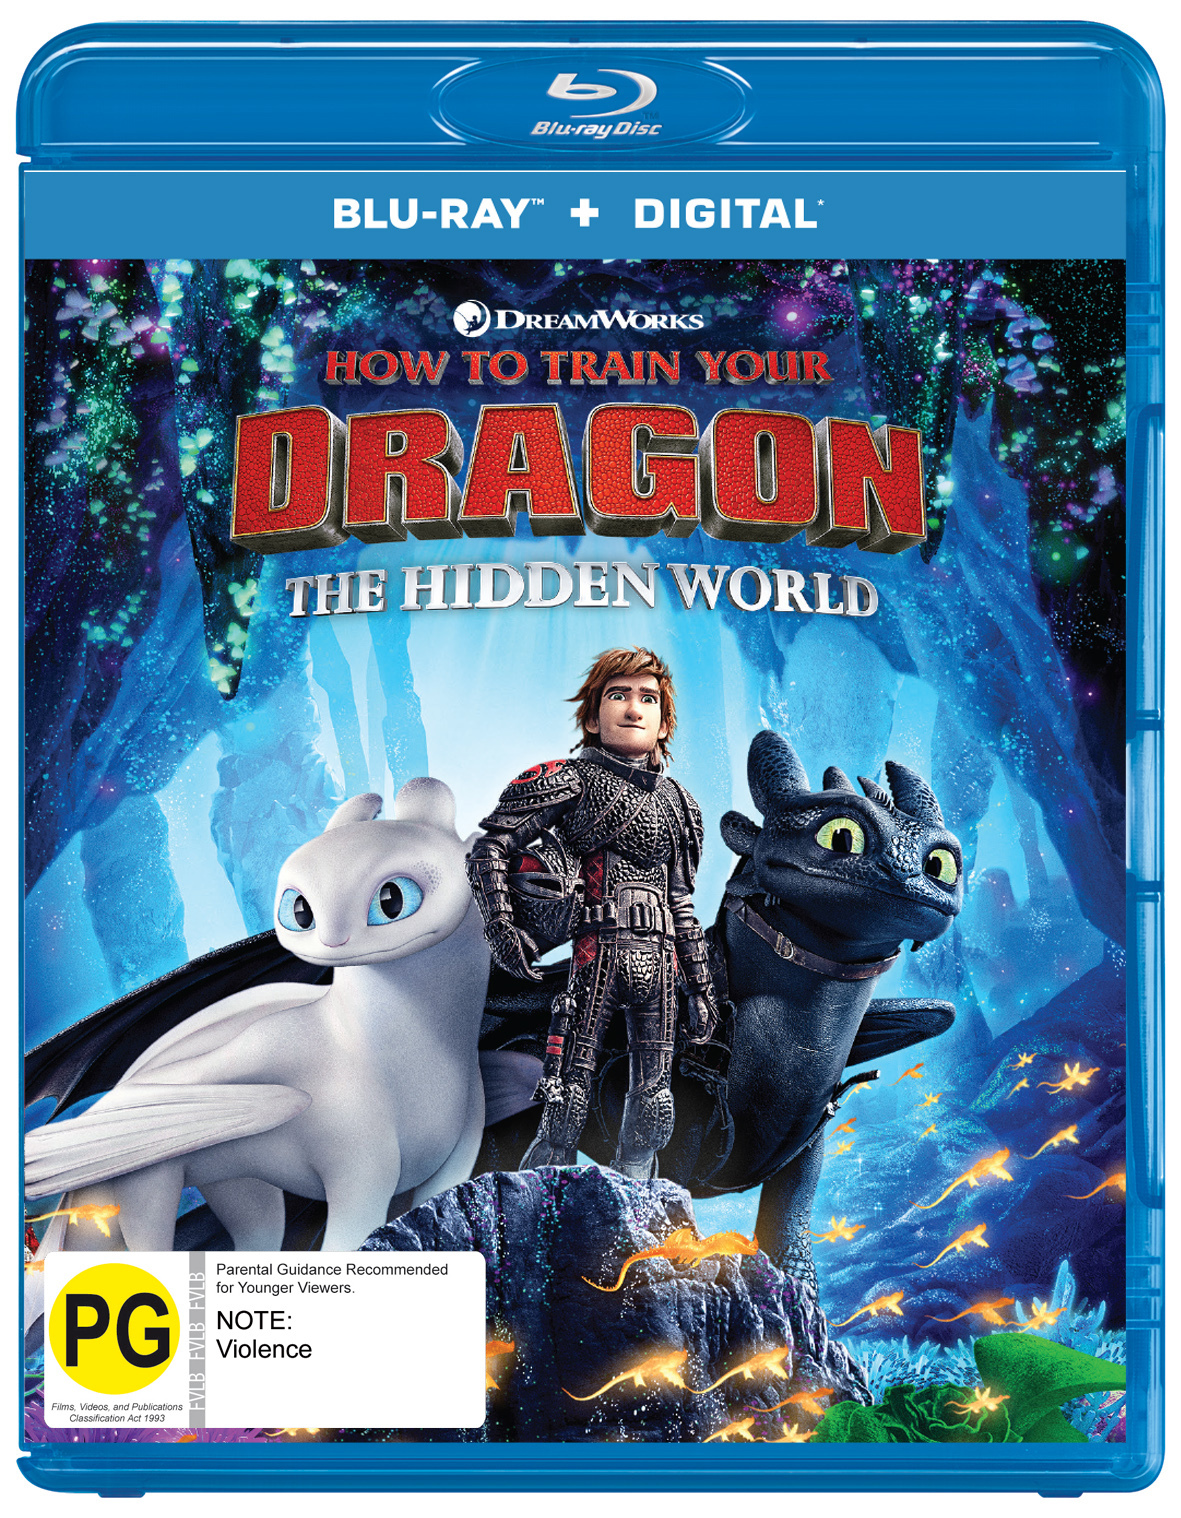 How To Train Your Dragon: The Hidden World on Blu-ray image